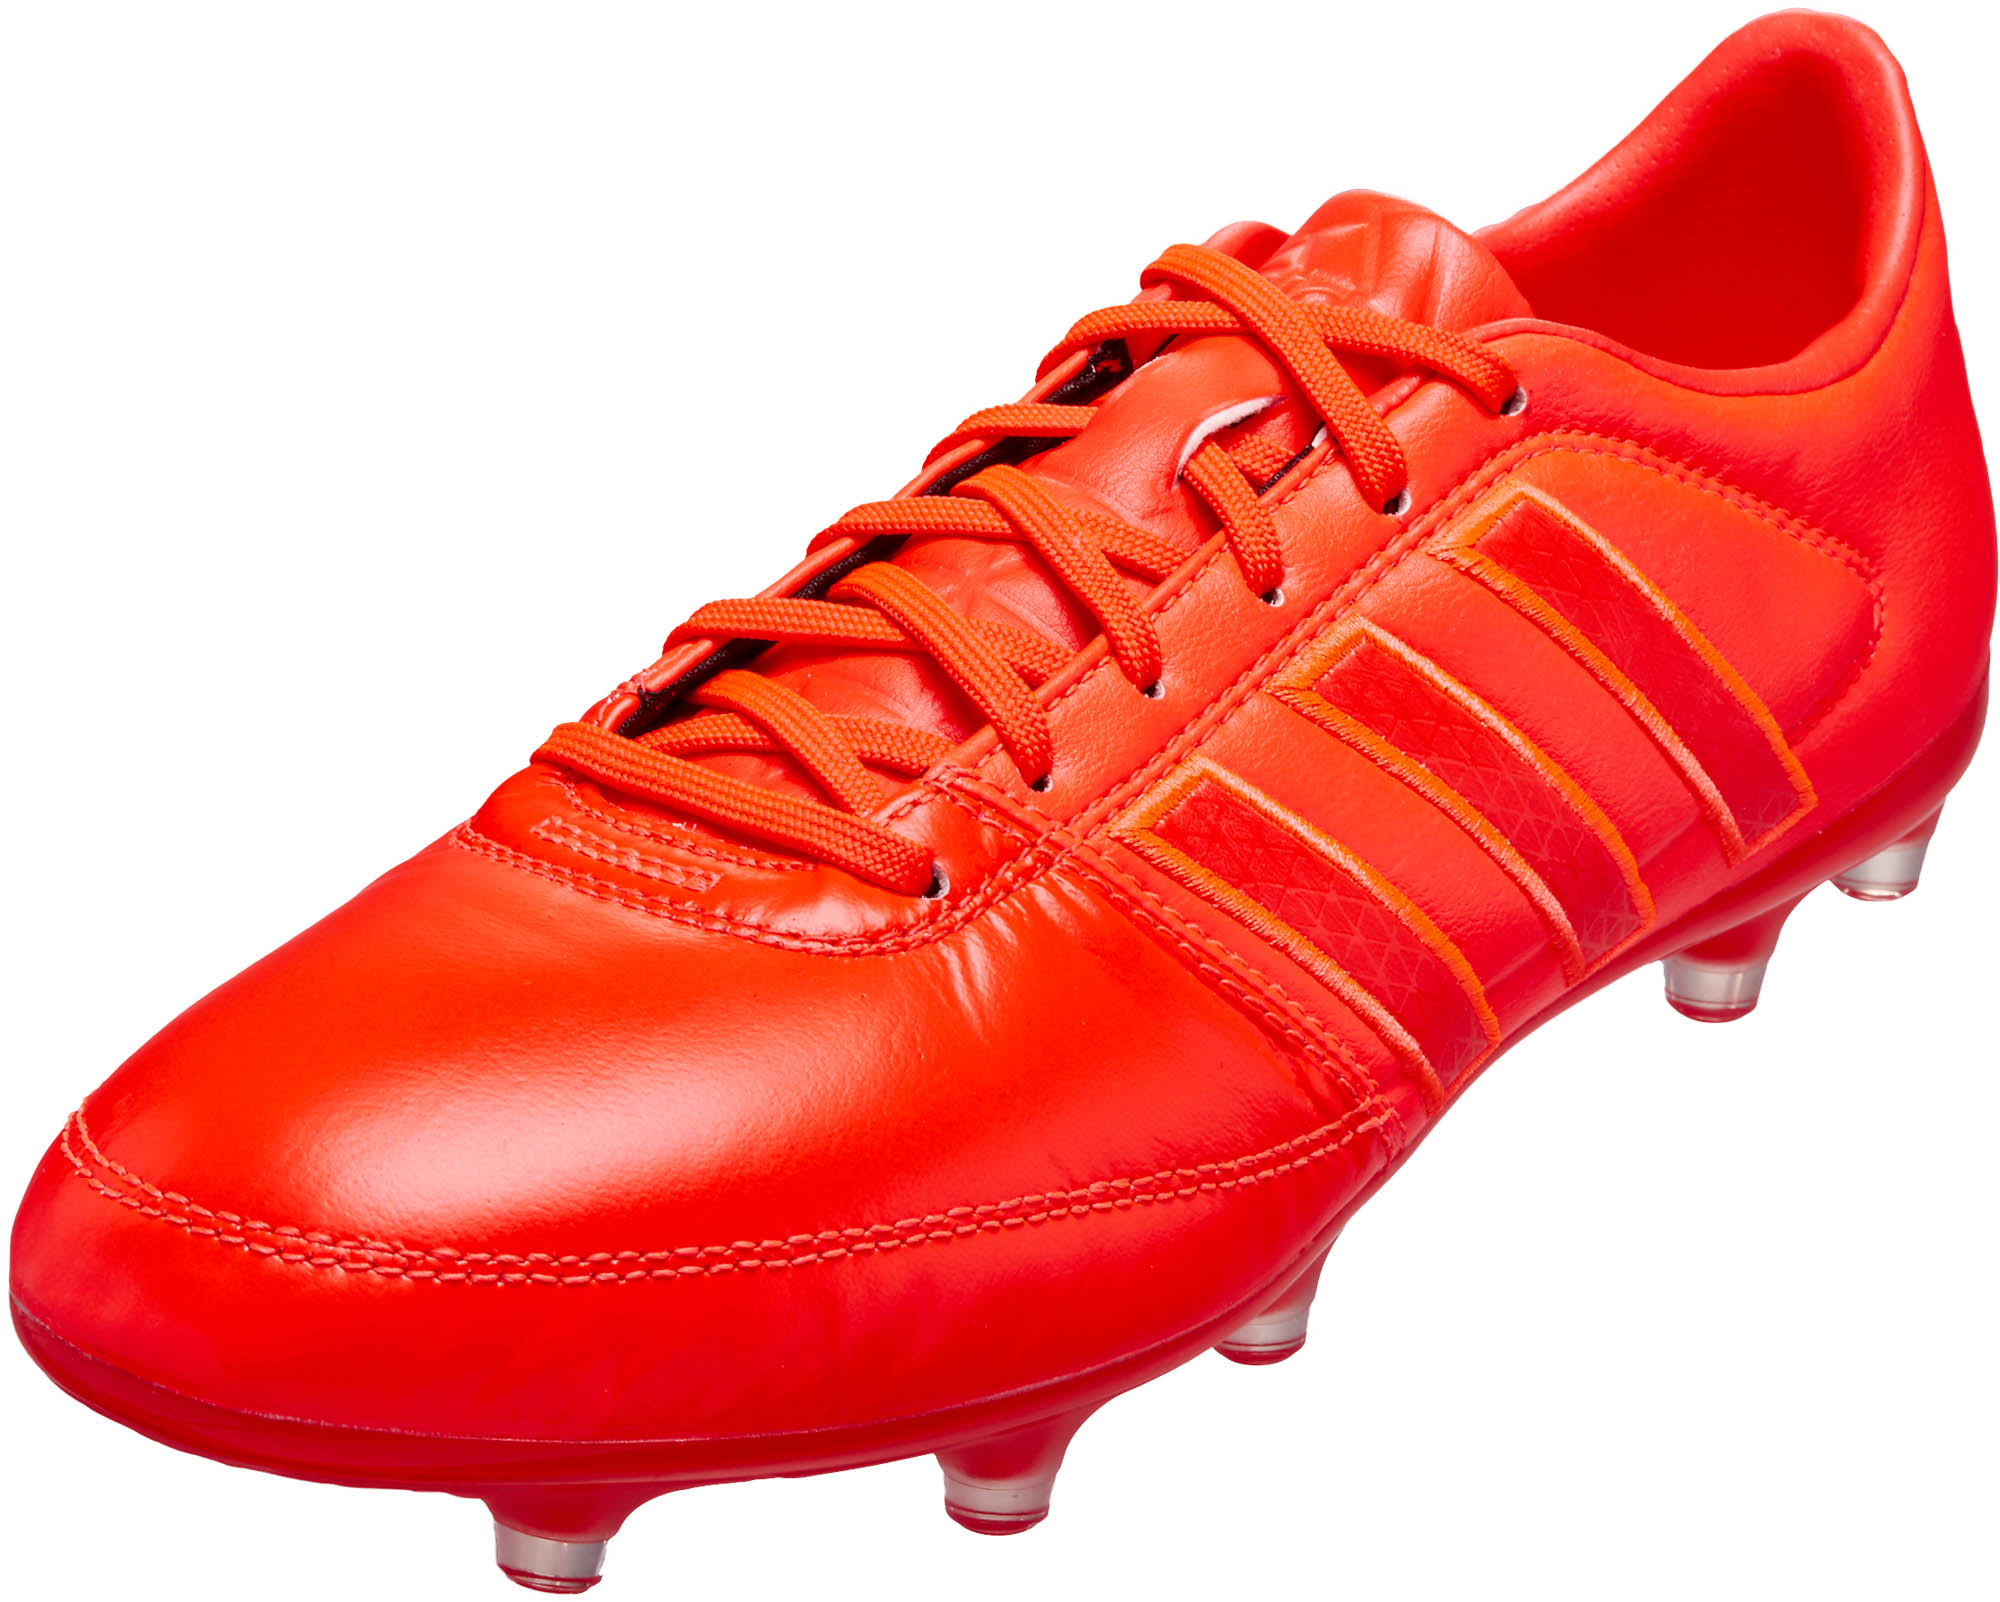 sports shoes ba063 eca69 adidas Gloro 16.1 FG – Vivid Red